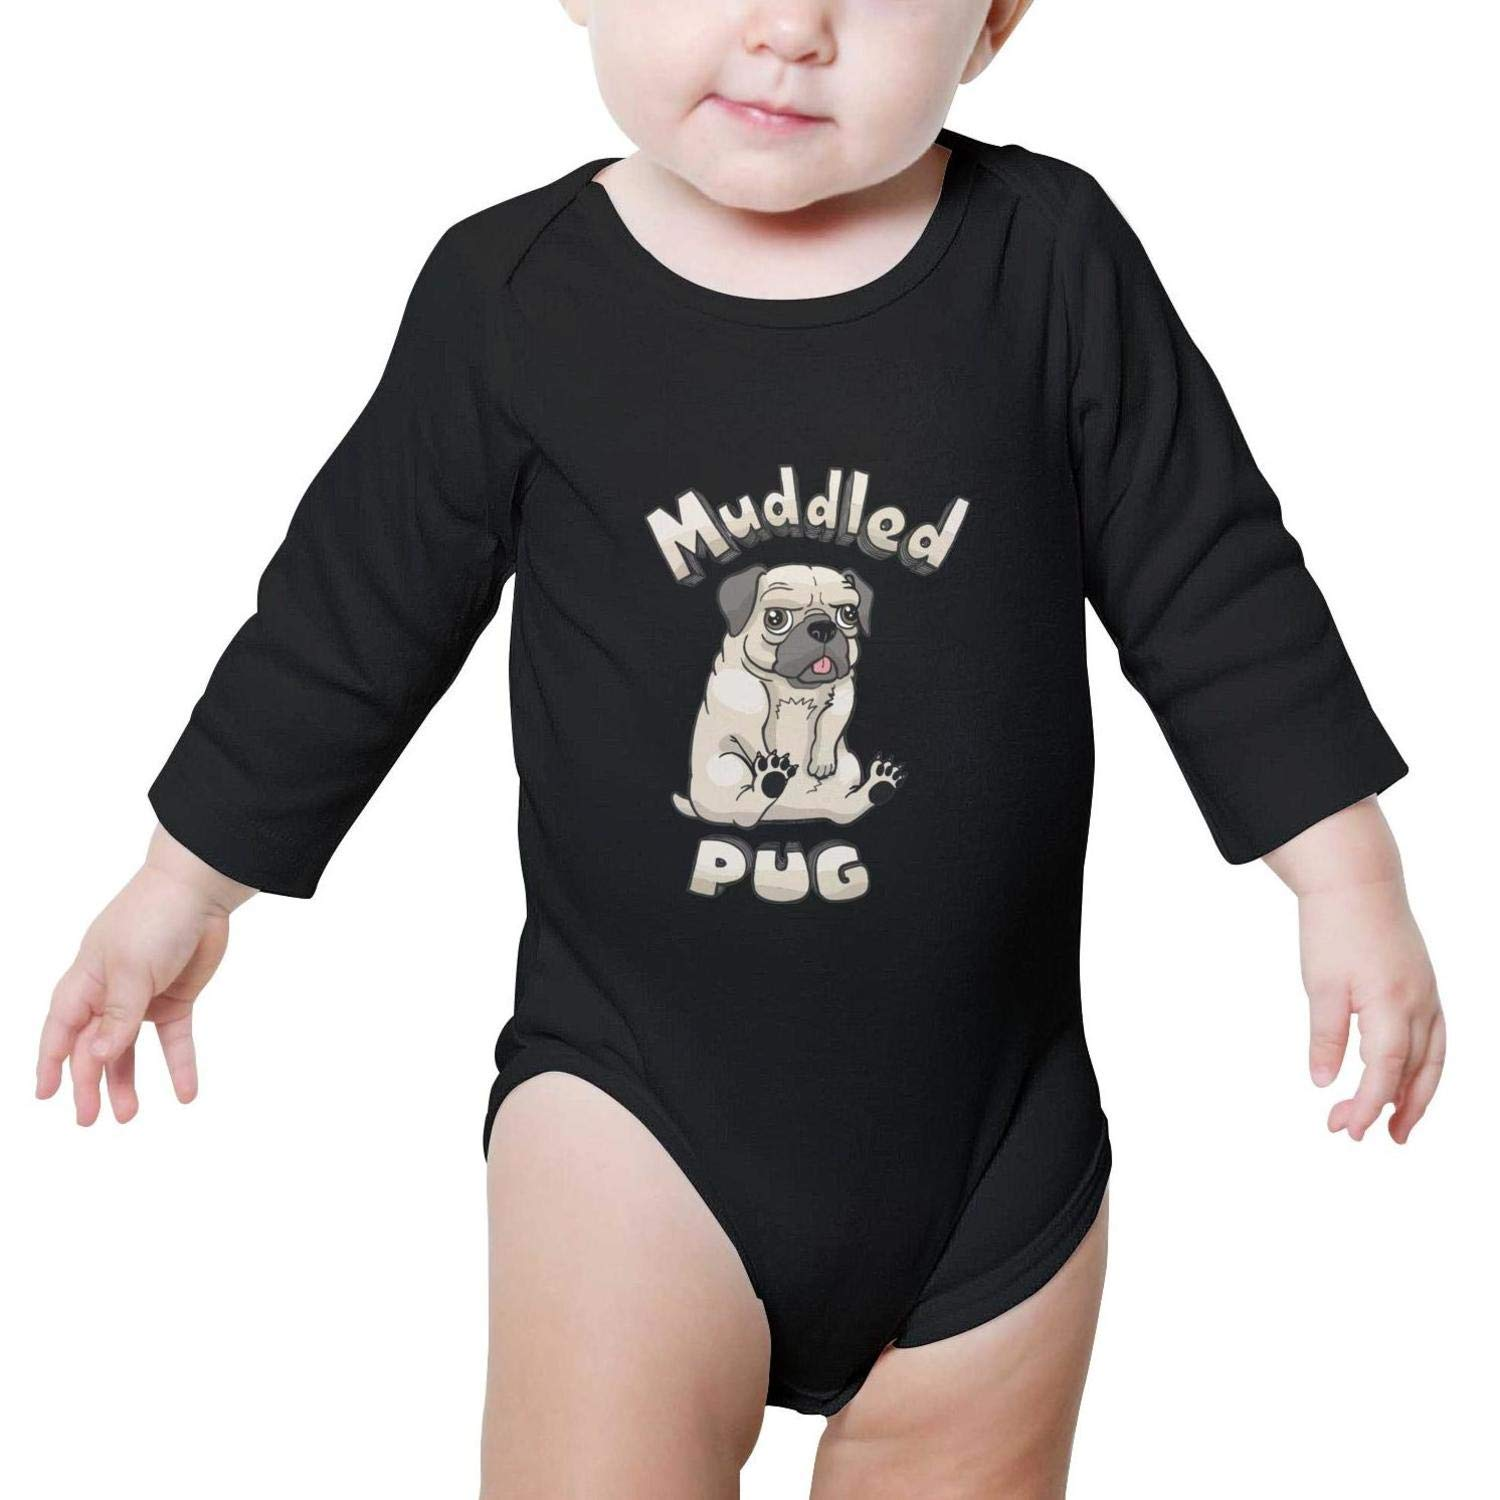 Ninja Stars Pig Long Sleeve Natural Organic Baby Onesie Outfits Novelty for Boys Girls